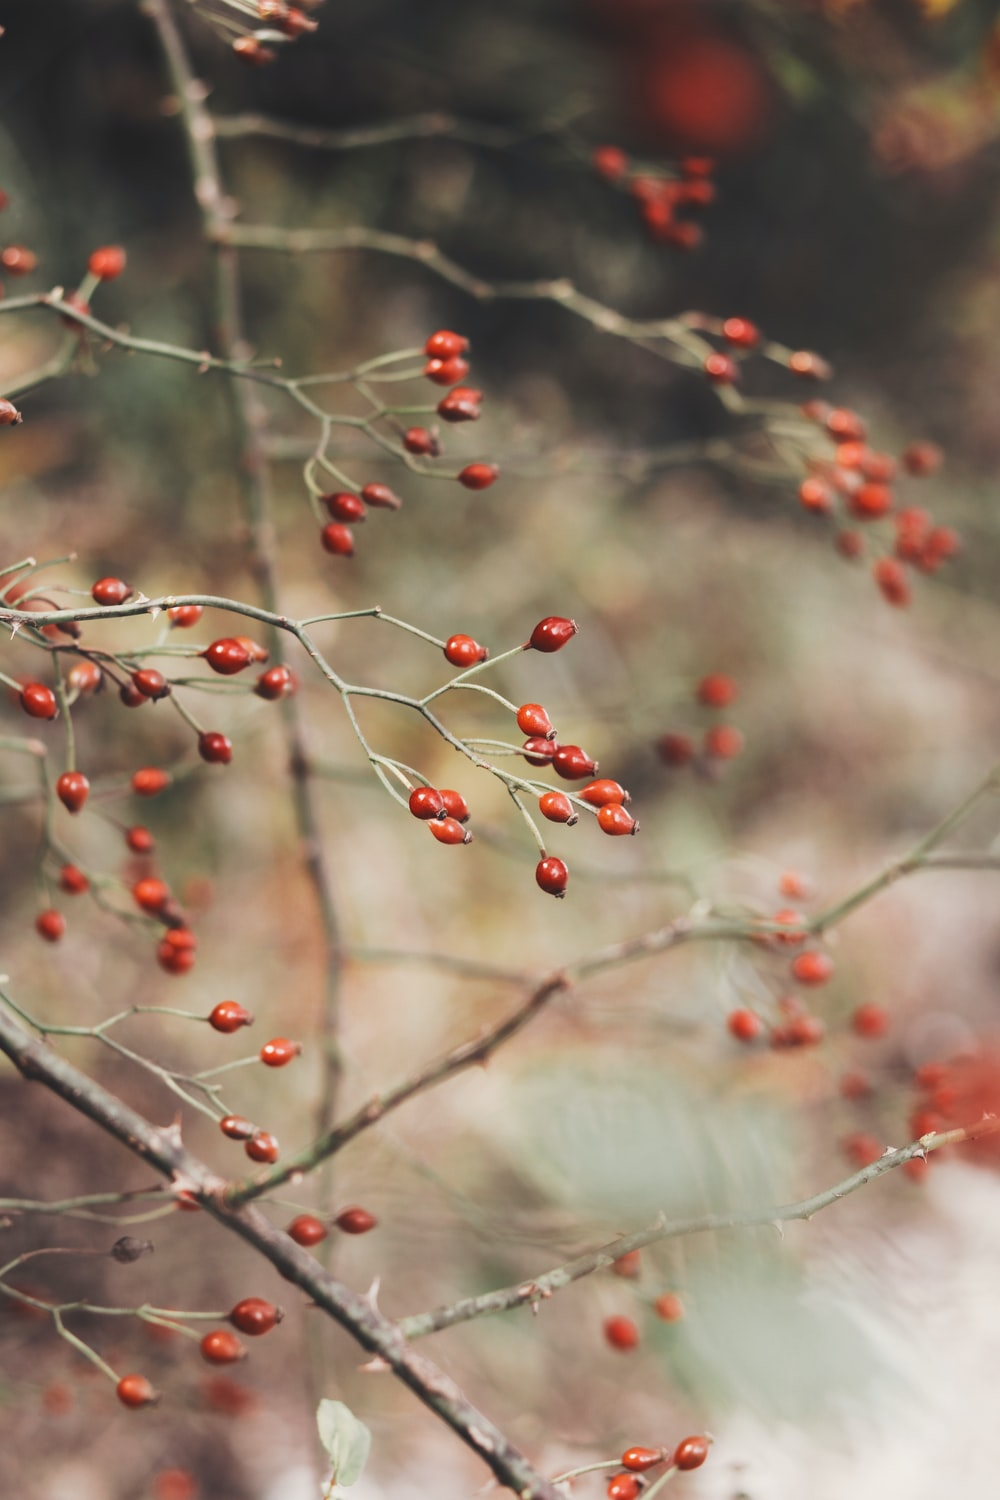 red and white round fruits